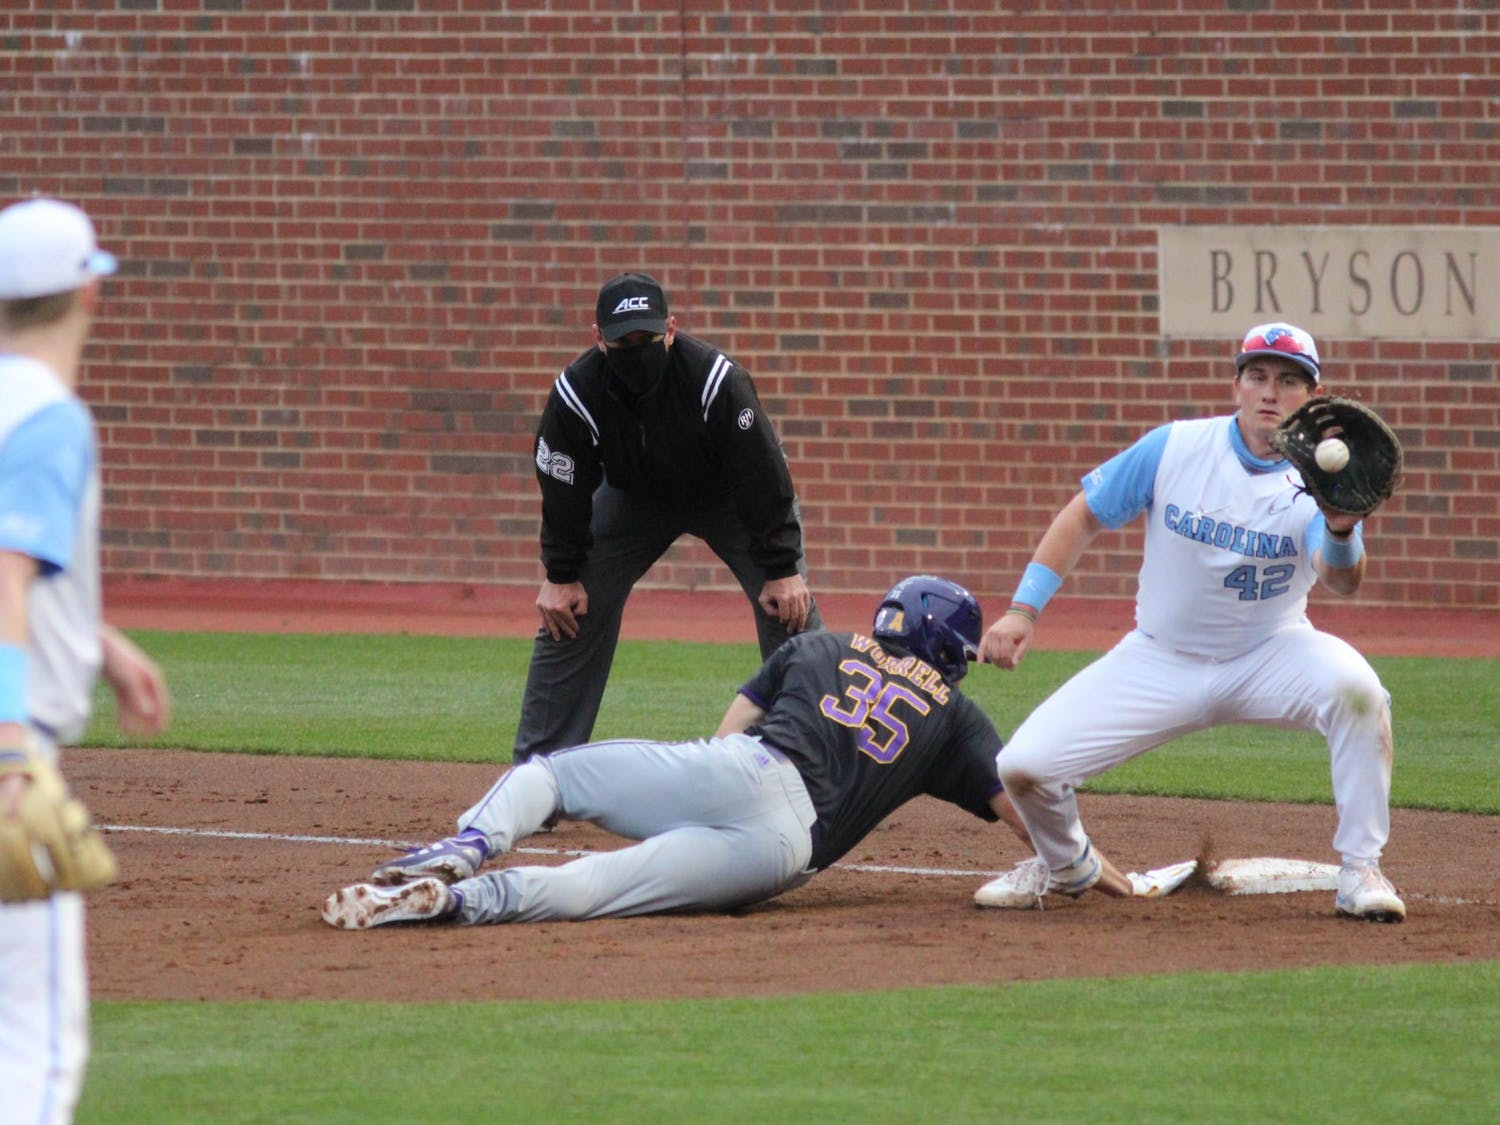 UNC sophomore left-handed pitcher Will Sandy (41) attempts to pick off ECU outfielder Bryson Worrell at first base during the Tar Heels' game against East Carolina University at Boshamer Stadium on March 23, 2021. The Tar Heels defeated the Pirates 8-1.